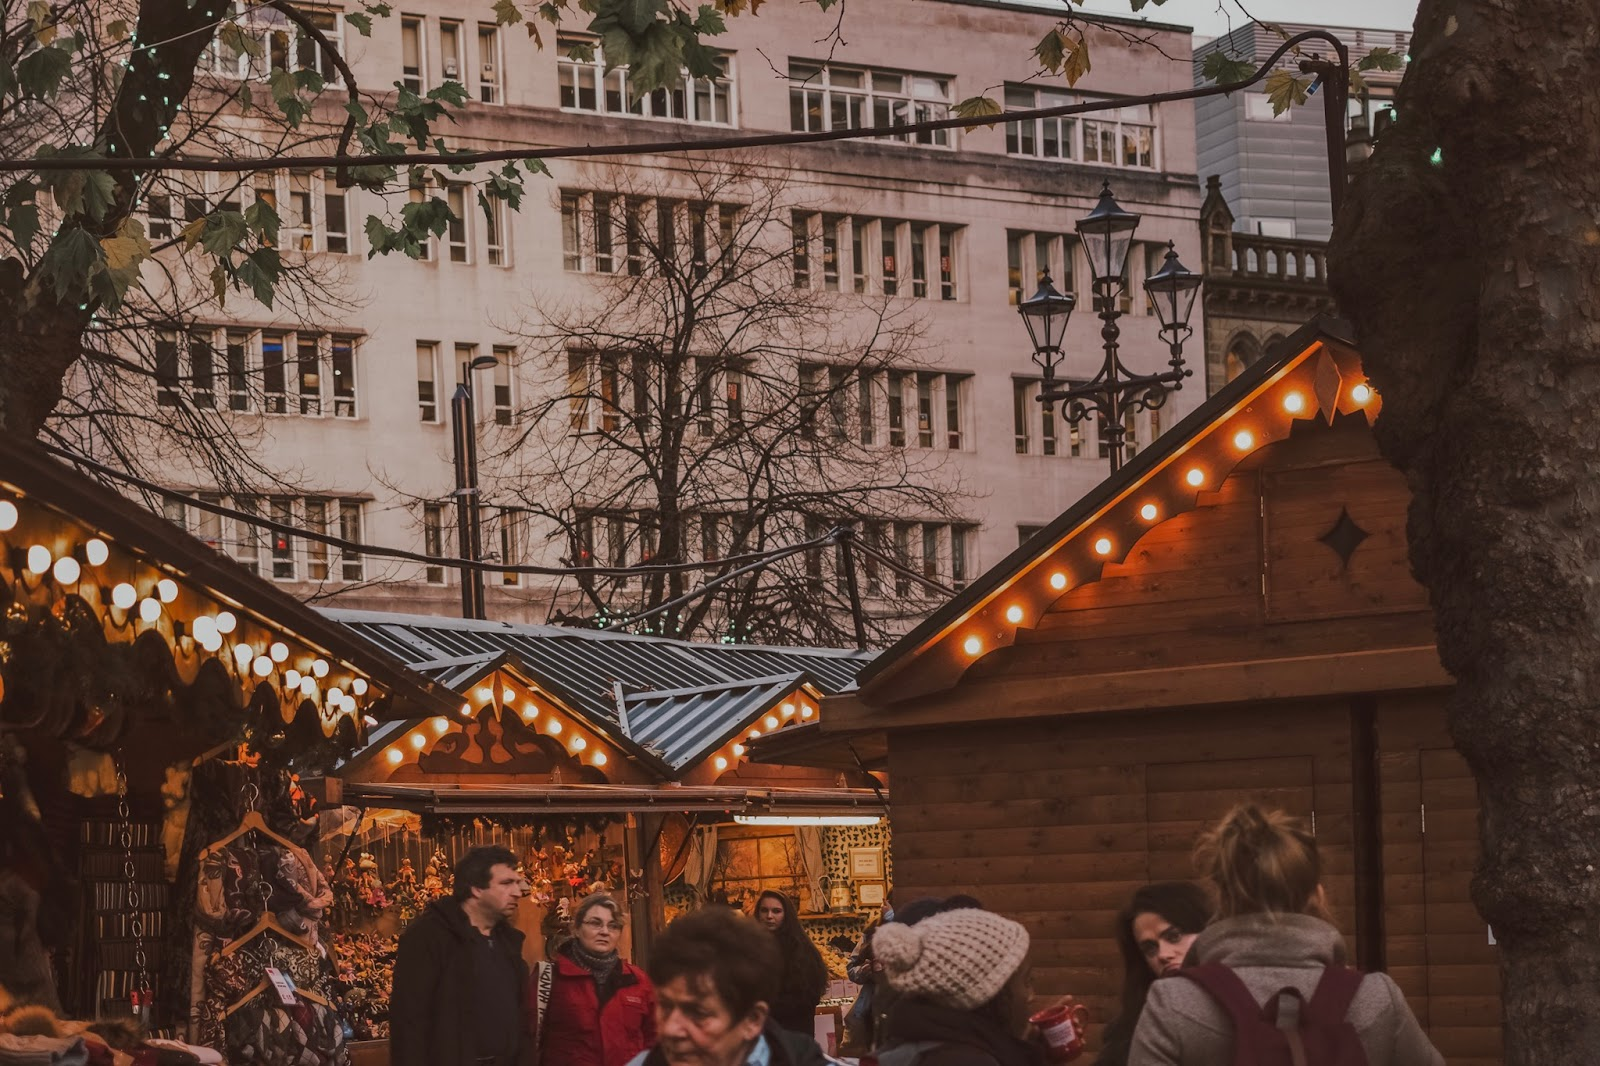 Manchester Christmas Market, Derbyshire Christmas Markets, Where to celebrate Christmas Derbyshire, Derby Christmas Market,